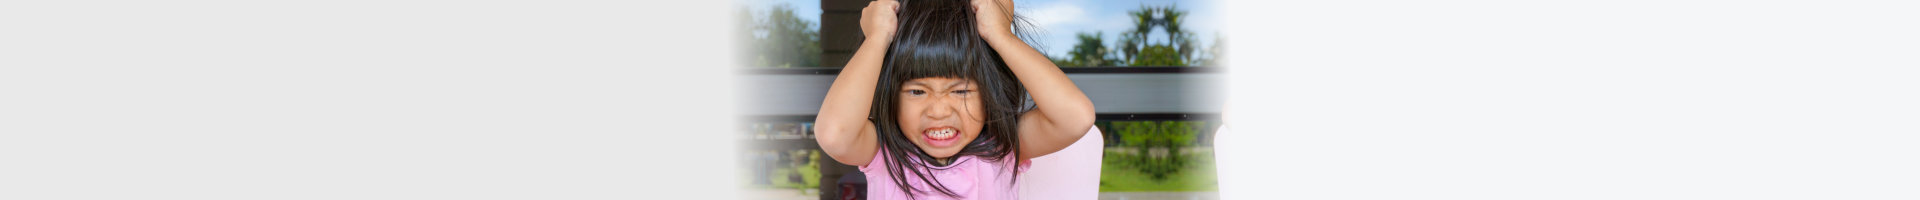 little girl getting angry